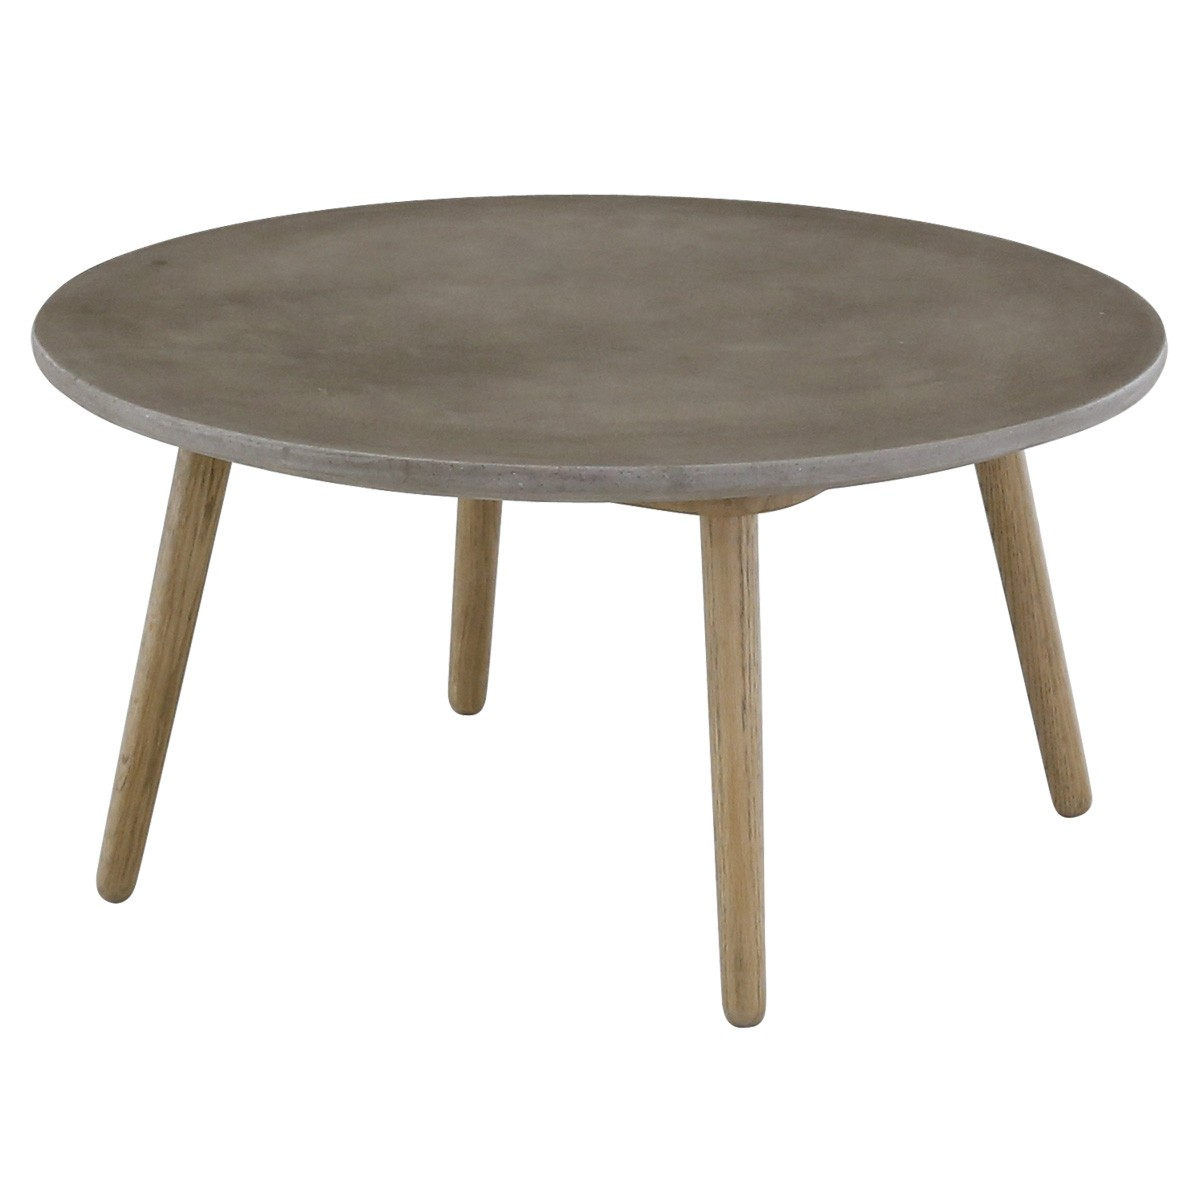 Table basse ronde style contemporain b ton et ch ne bird mooviin - Table basse ronde chene ...